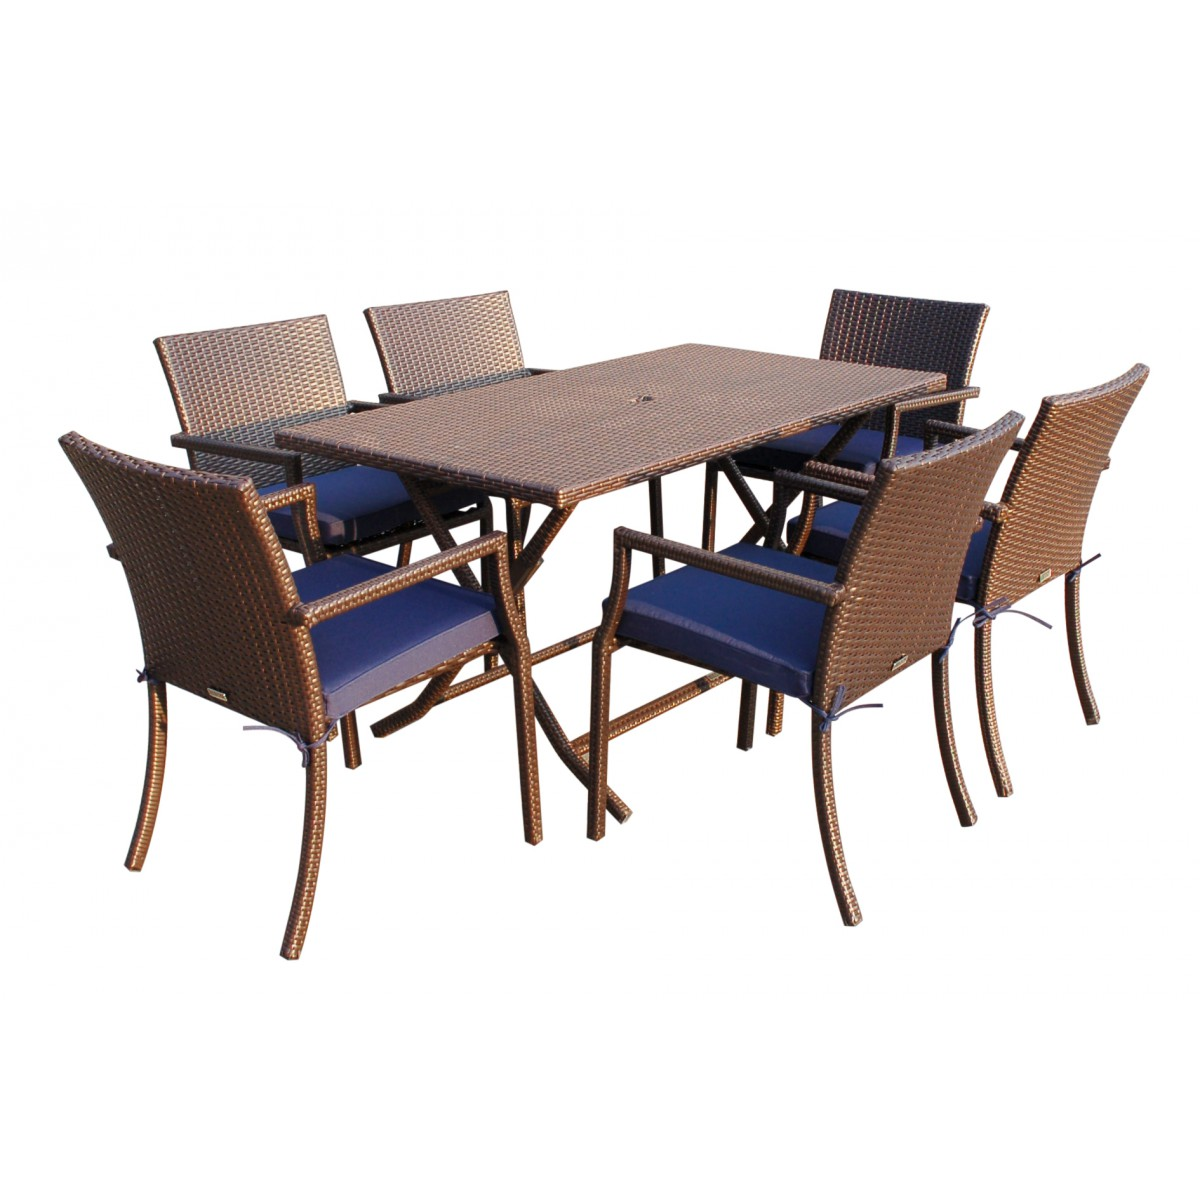 Cafe Square Back Chairs and Folding Wicker Buffet Table Set Blue